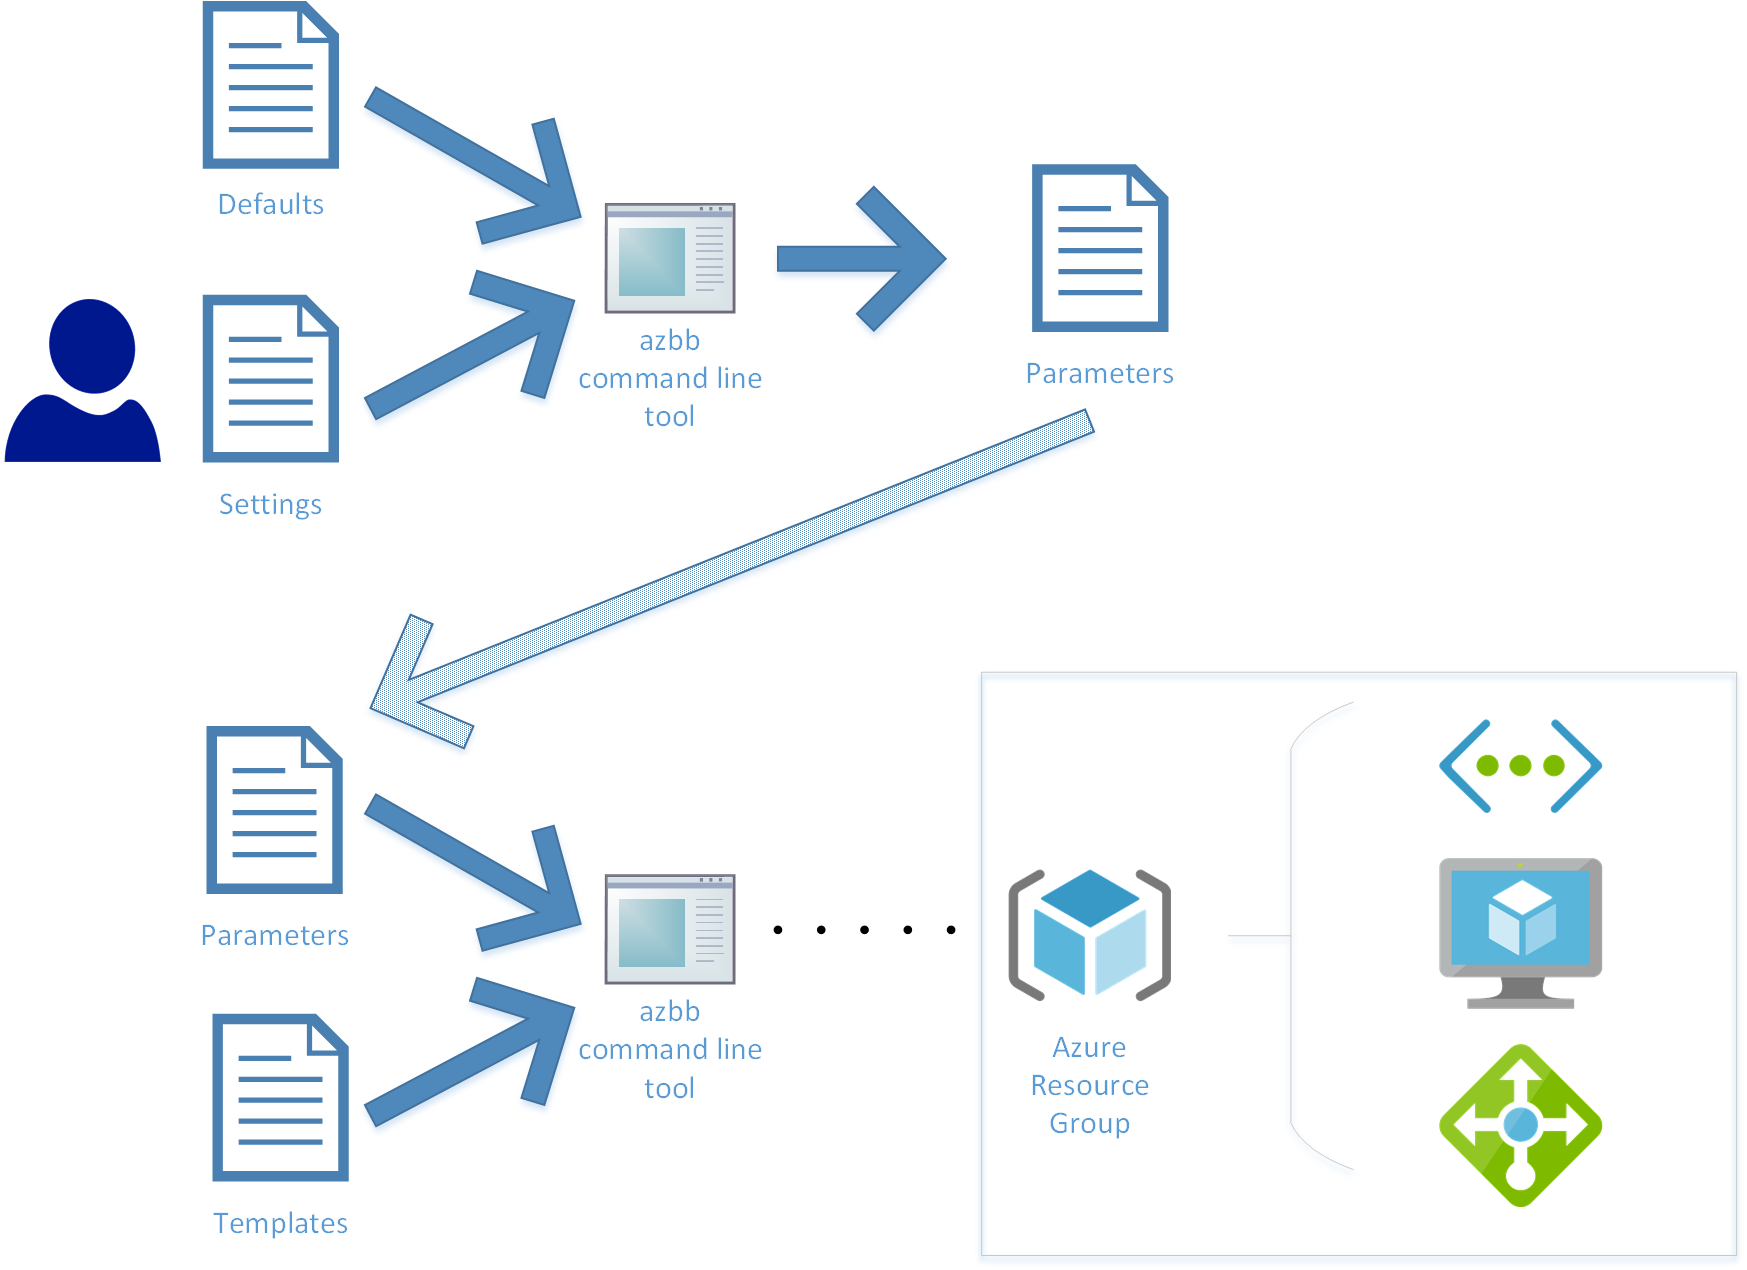 overview mspnp template building blocks wiki github